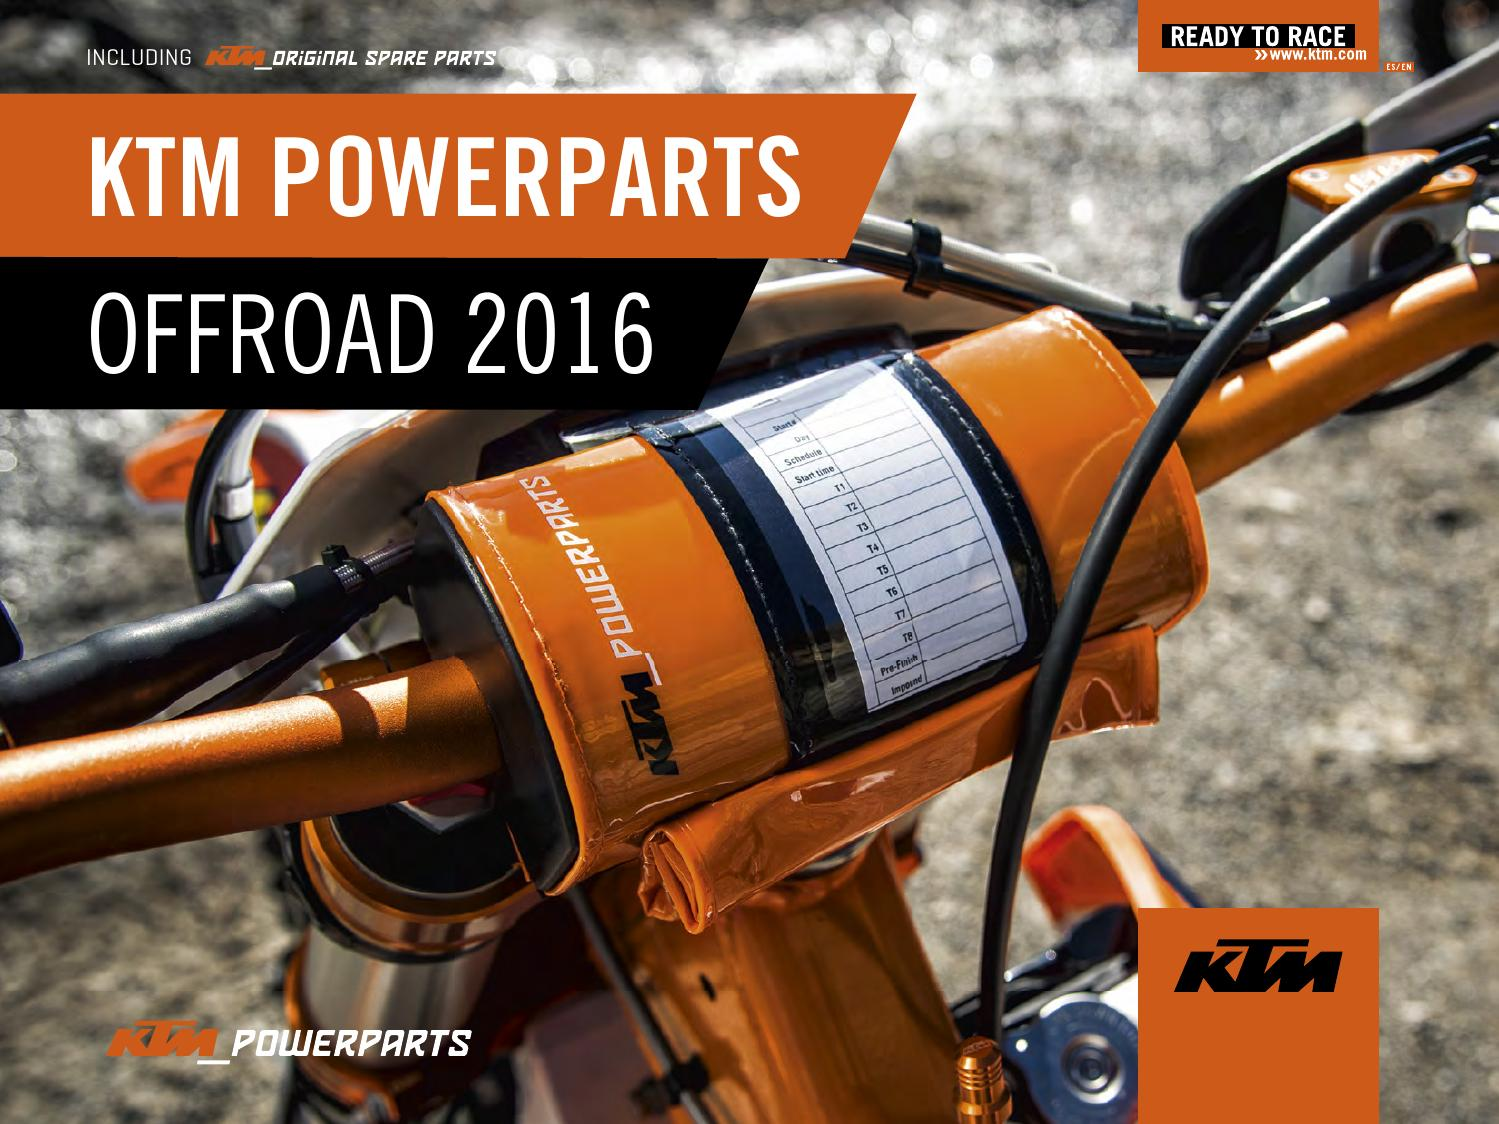 hight resolution of ktm powerparts offroad catalog 2016 english espanol by ktm group issuu